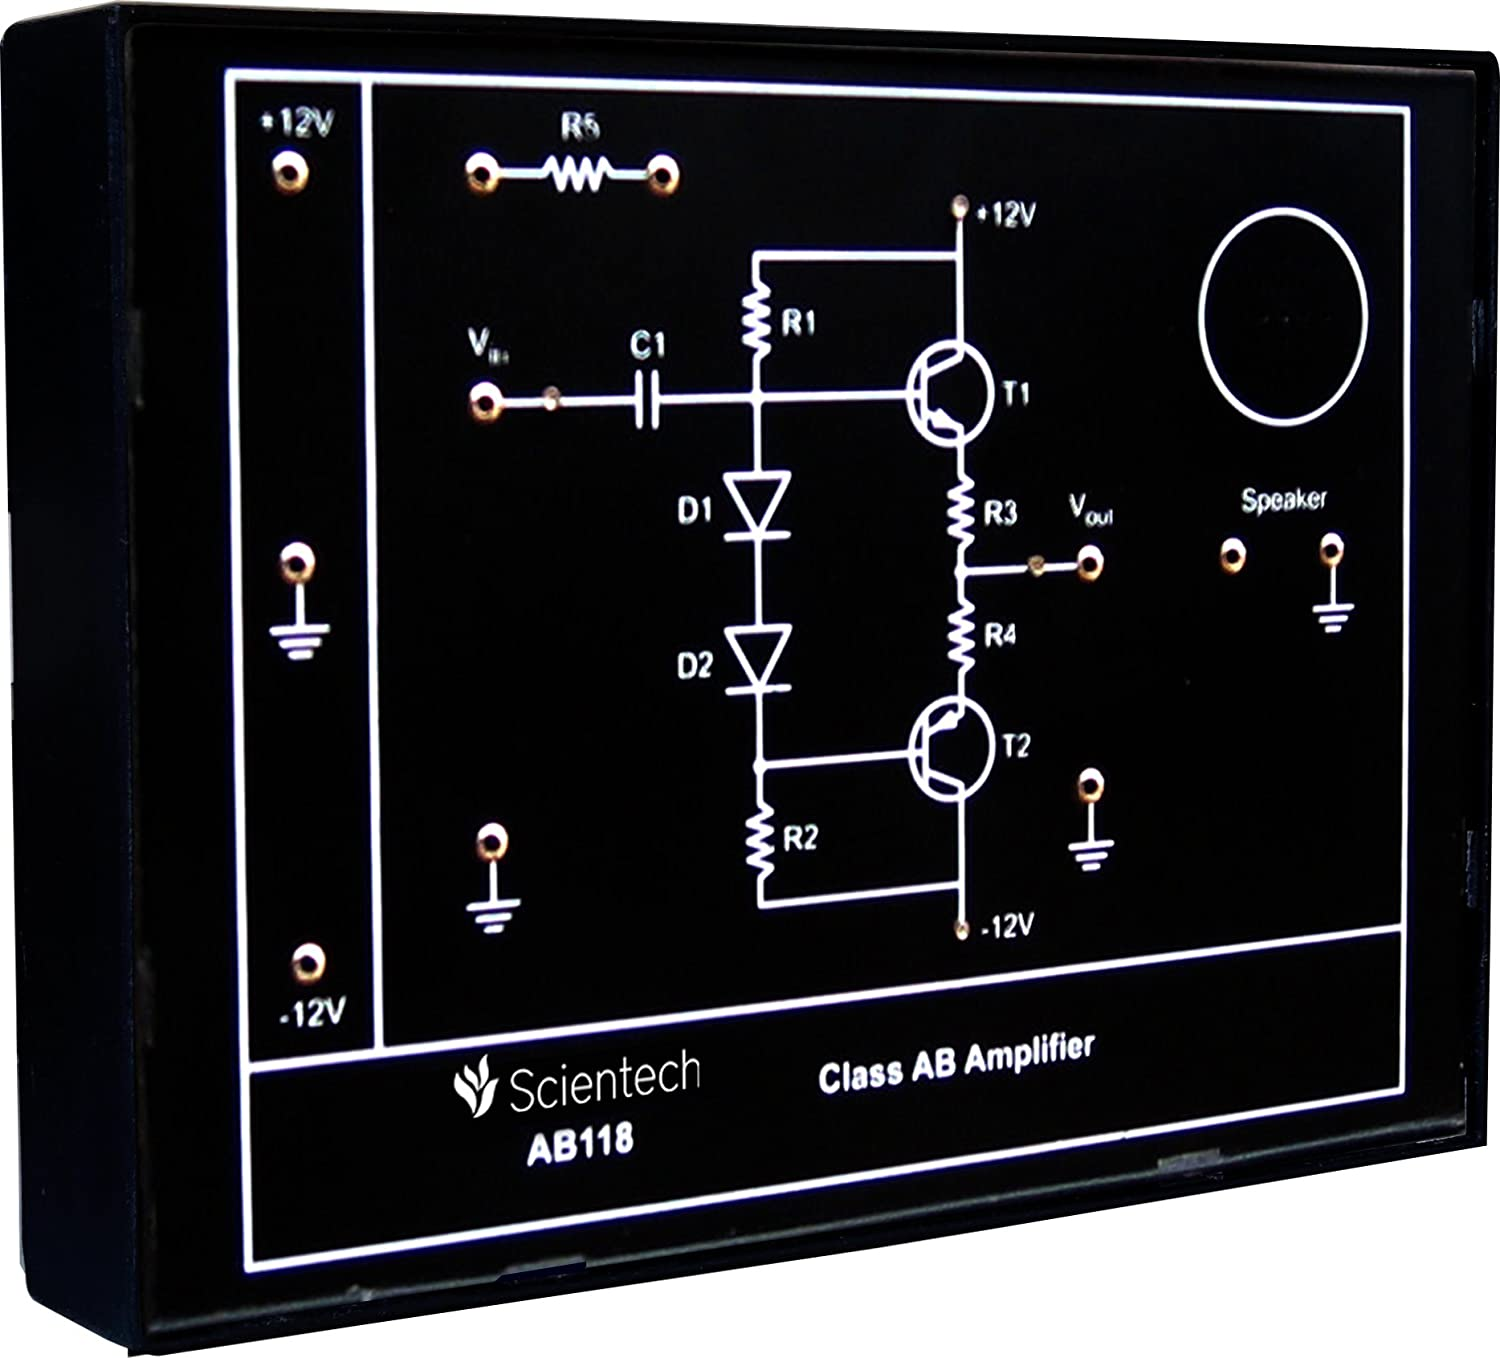 Ab118 Class Ab Amplifier Experiment Board And Trainer Kit With 1 12v Year Warranty Without Power Supply